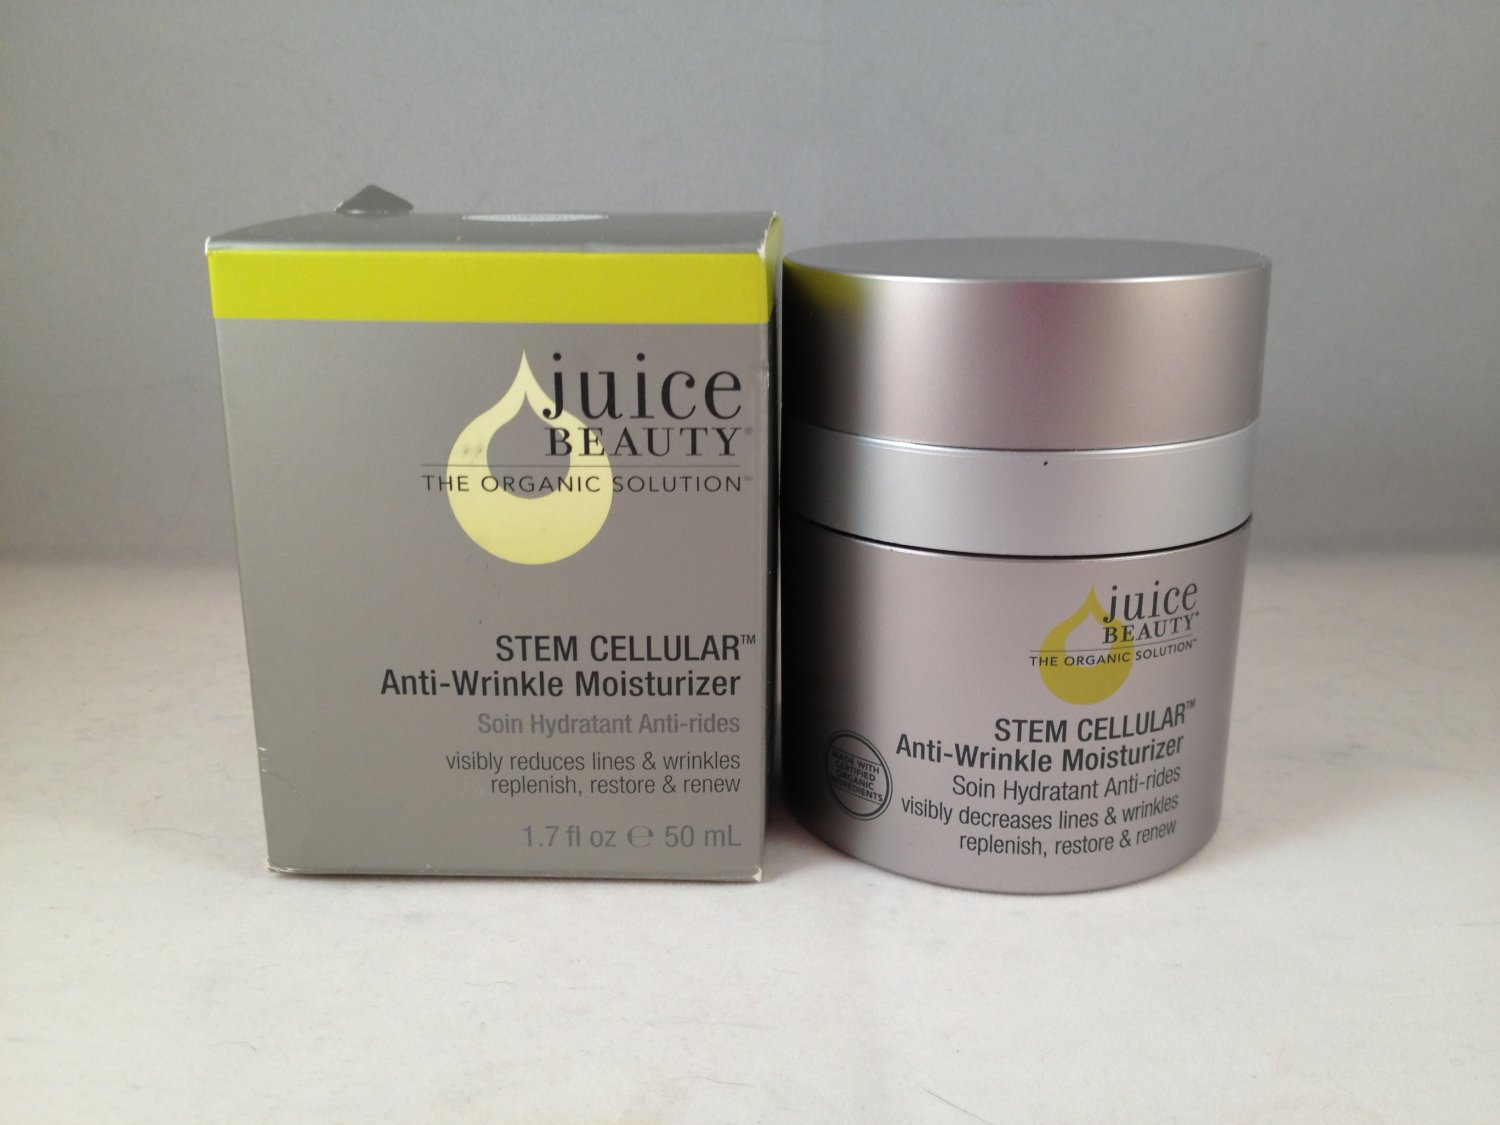 Juice Beauty Stem Cellular Anti-Wrinkle Moisturizer cream